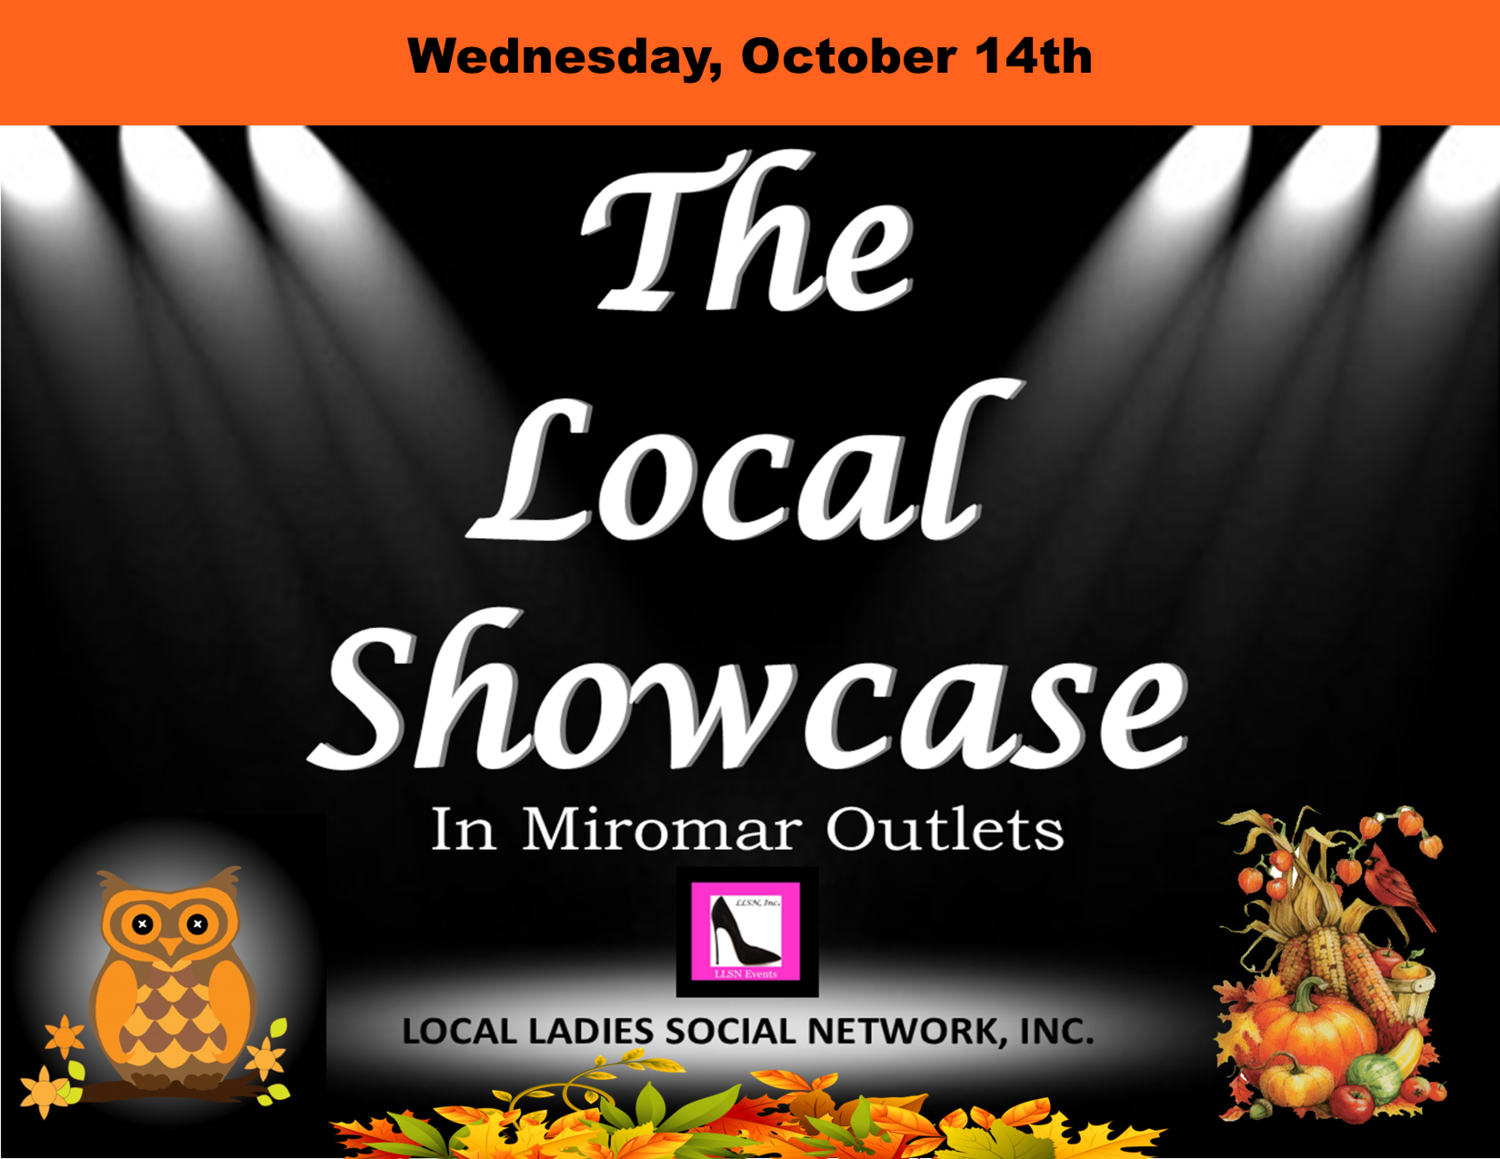 Wednesday, October 14th 11am-7pm